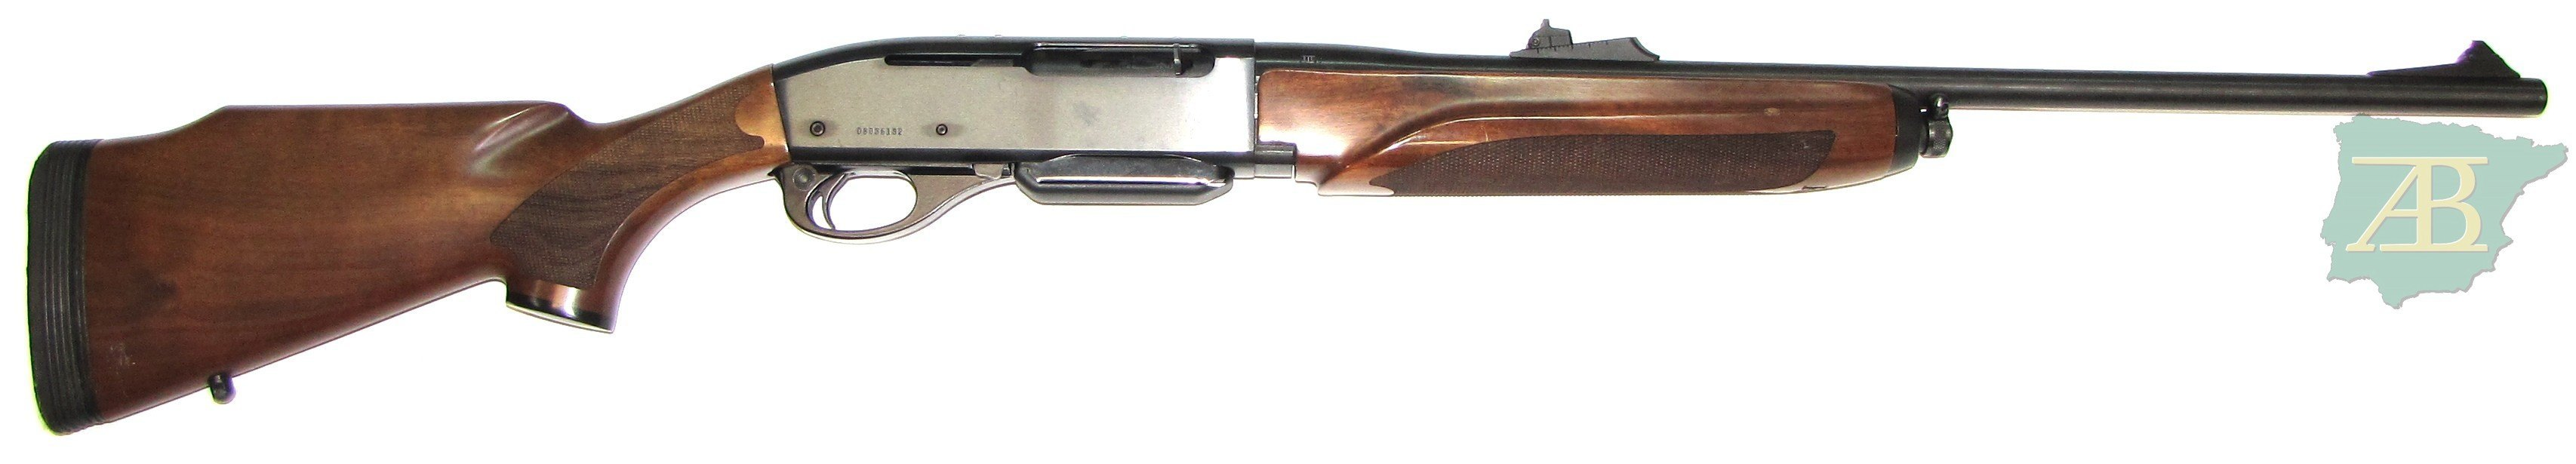 RIFLE SEMIAUTOMÁTICO DE CAZA REMINGTON .30-06 SPRG Ref. 4997